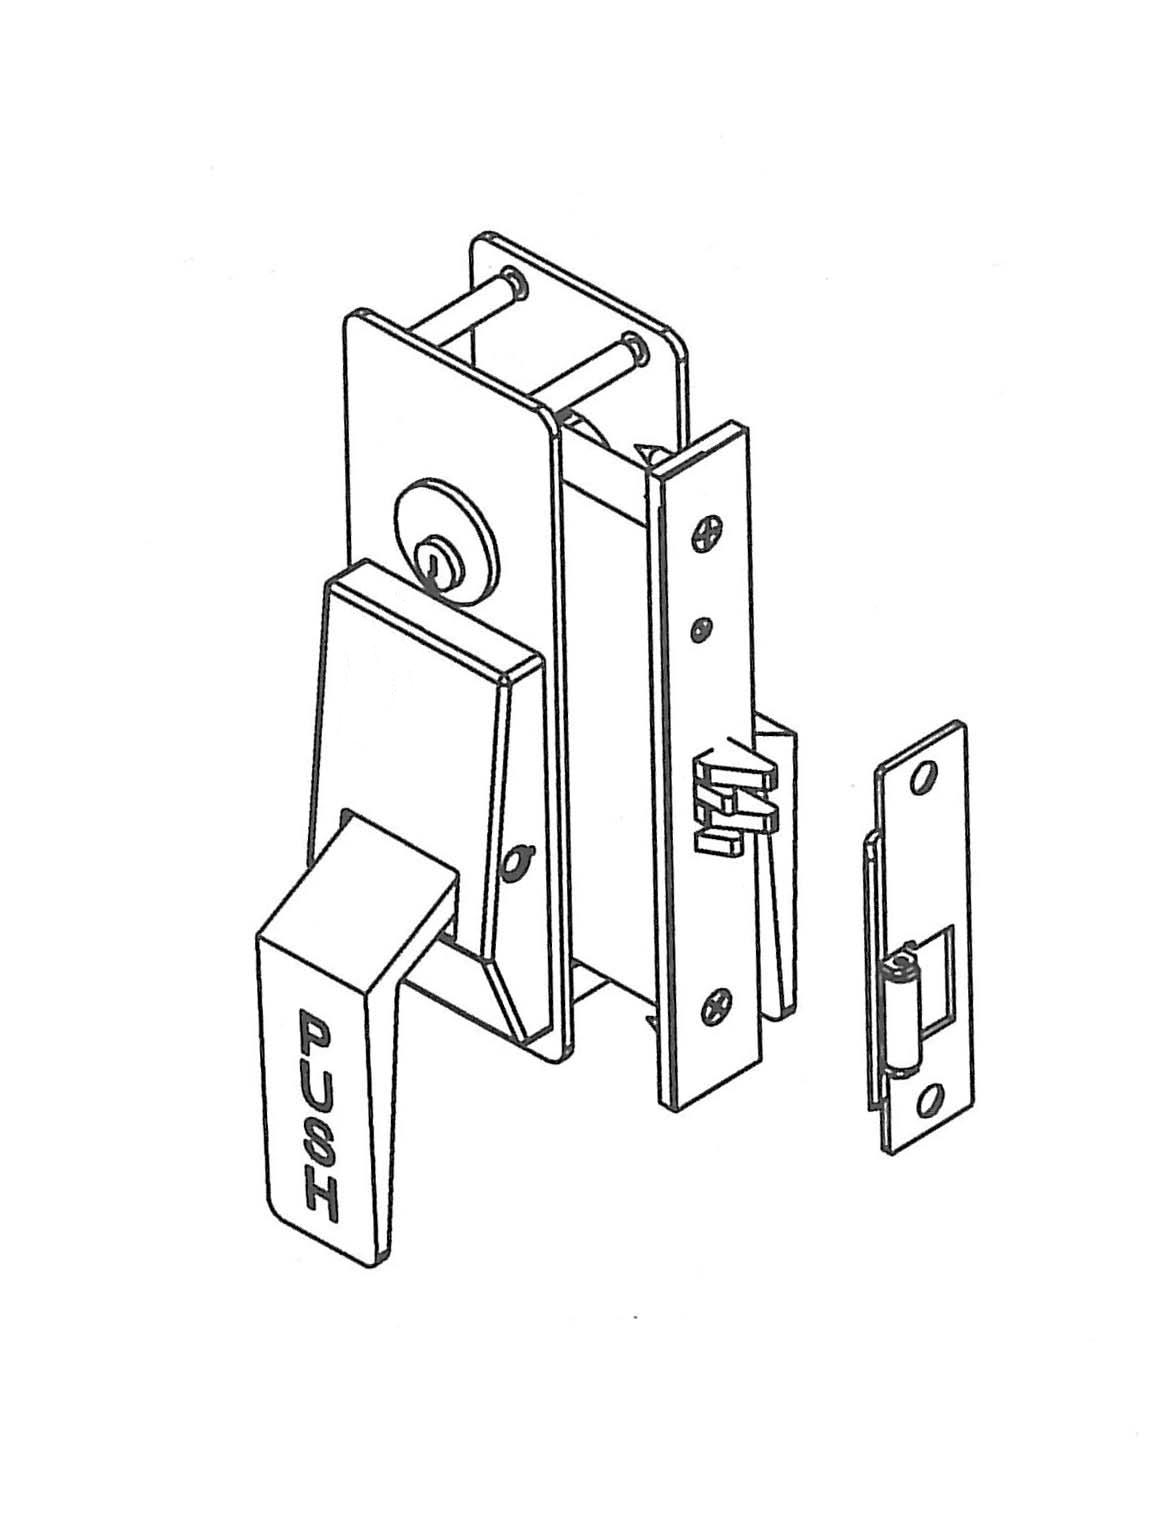 Trimco Latches Push Pull Latch With Mortise Lock Diagram